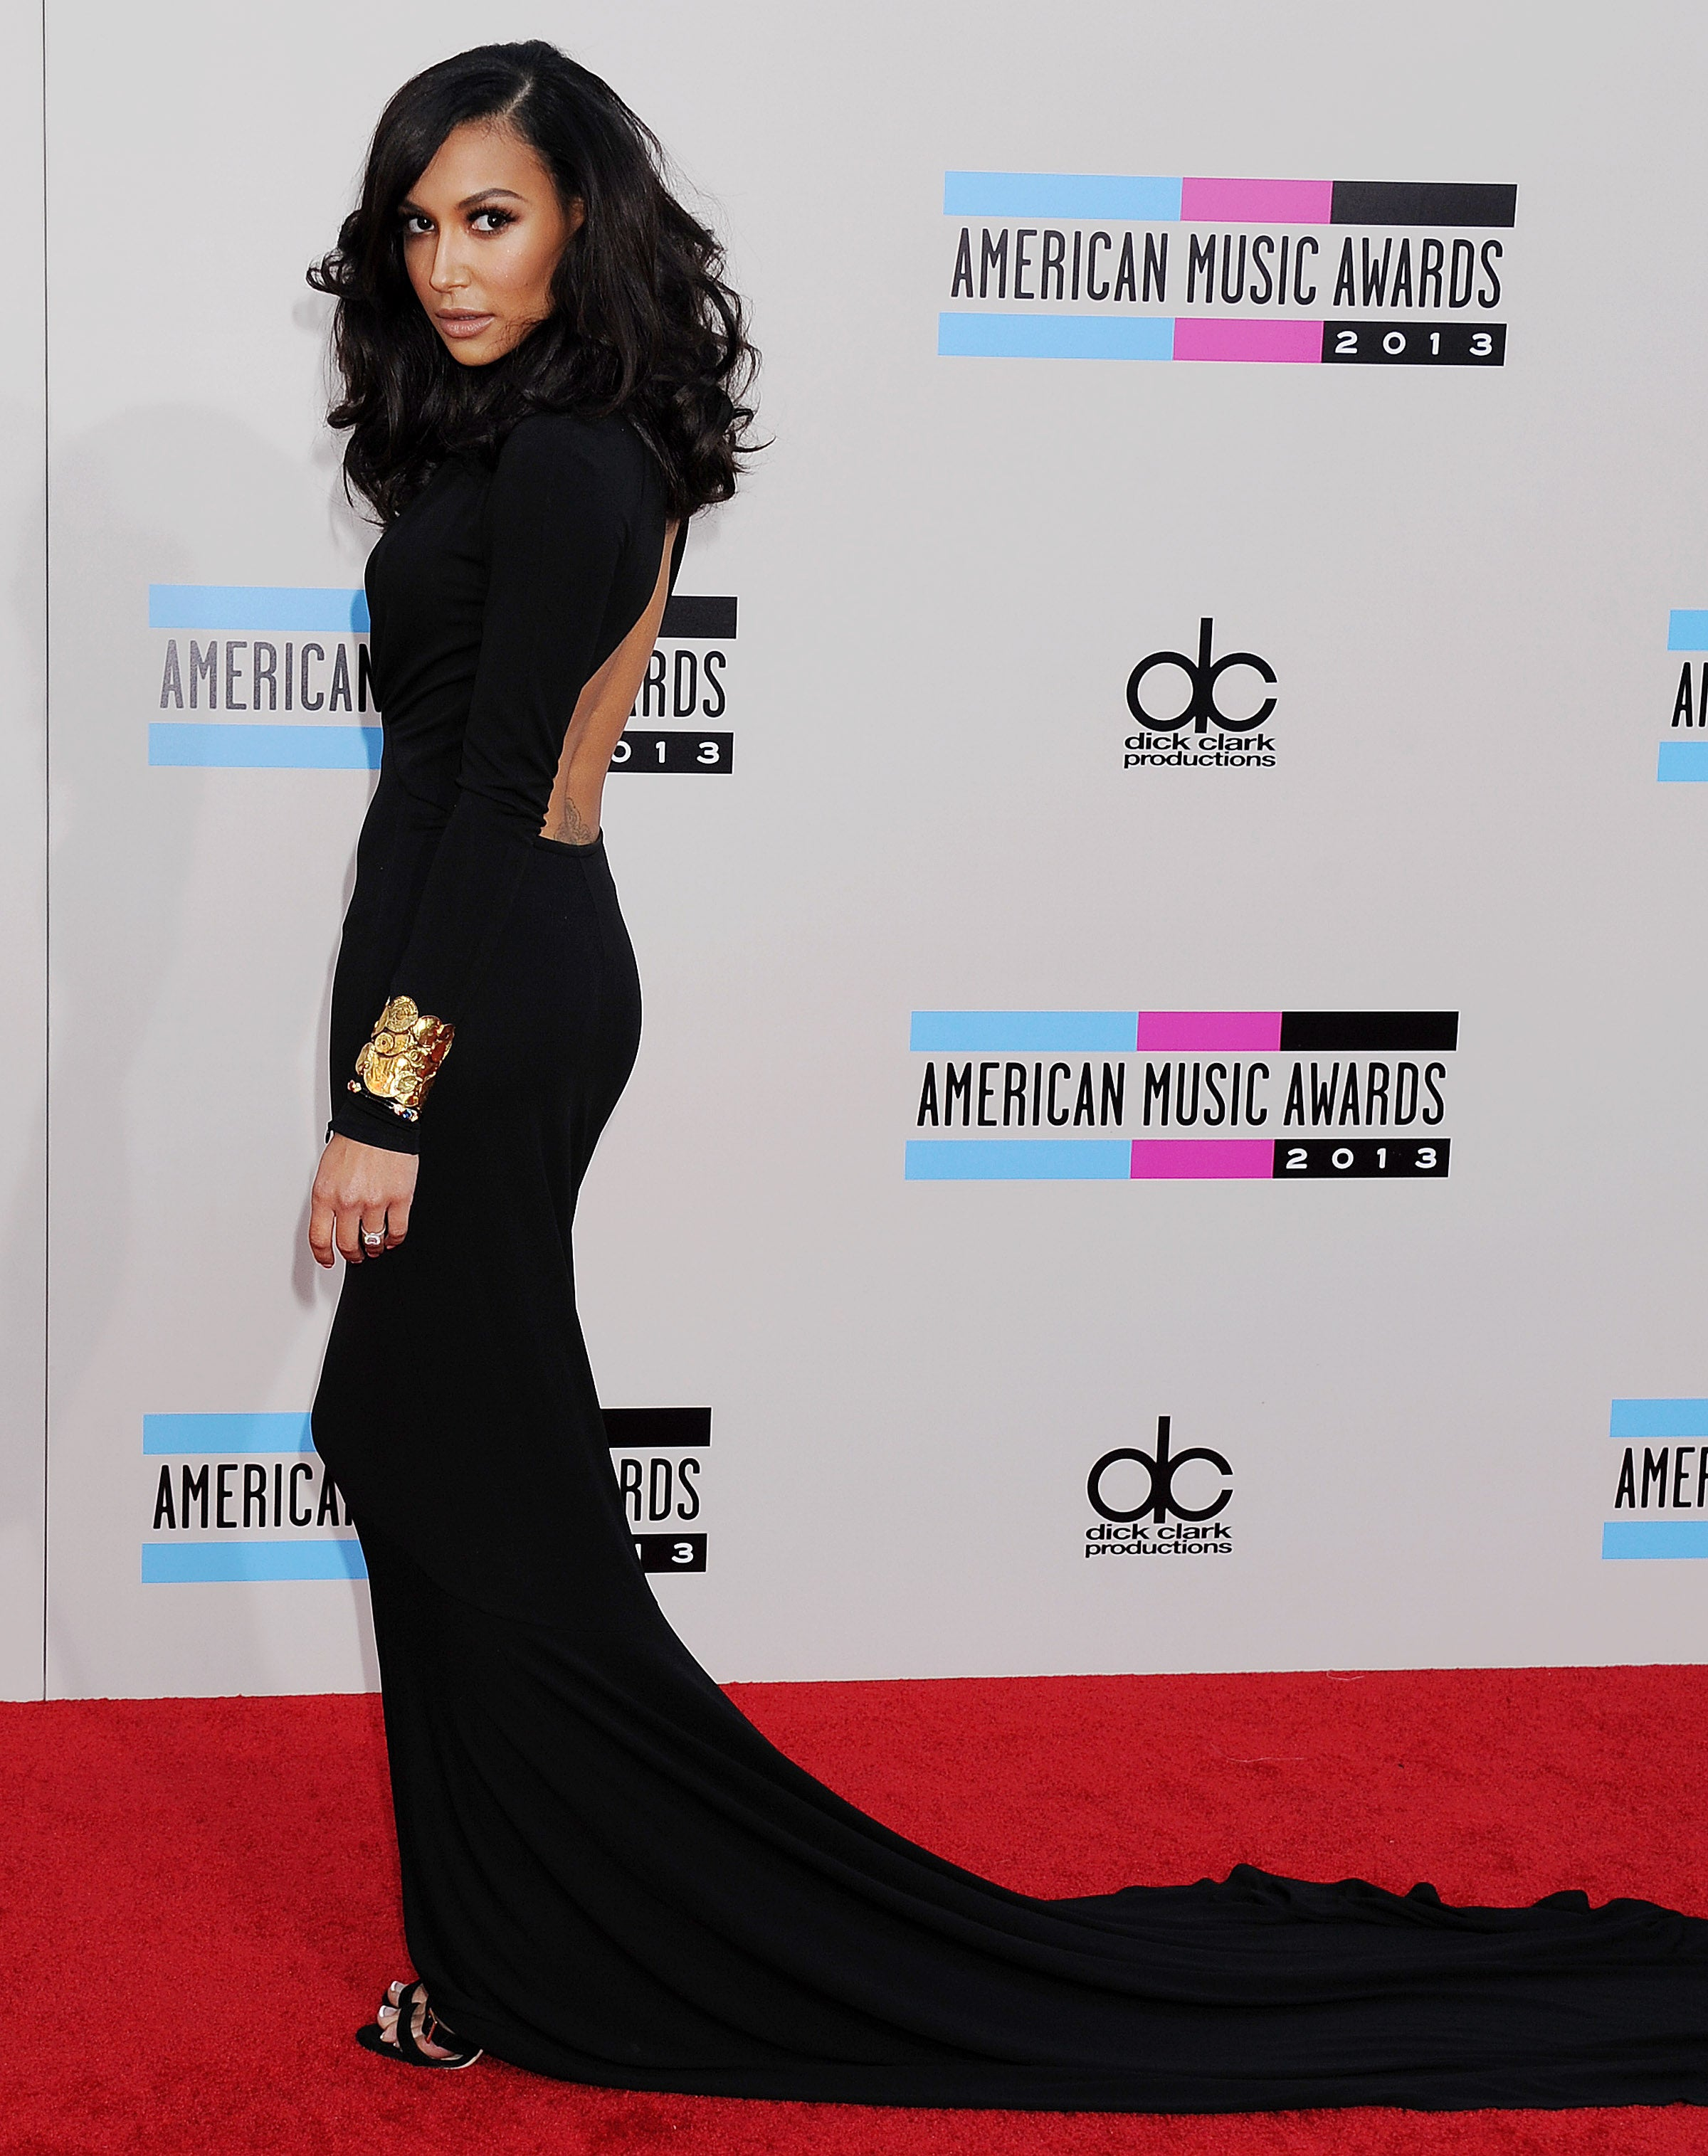 The Best and Craziest of American Music Awards Fashion! | L.A. LIVE